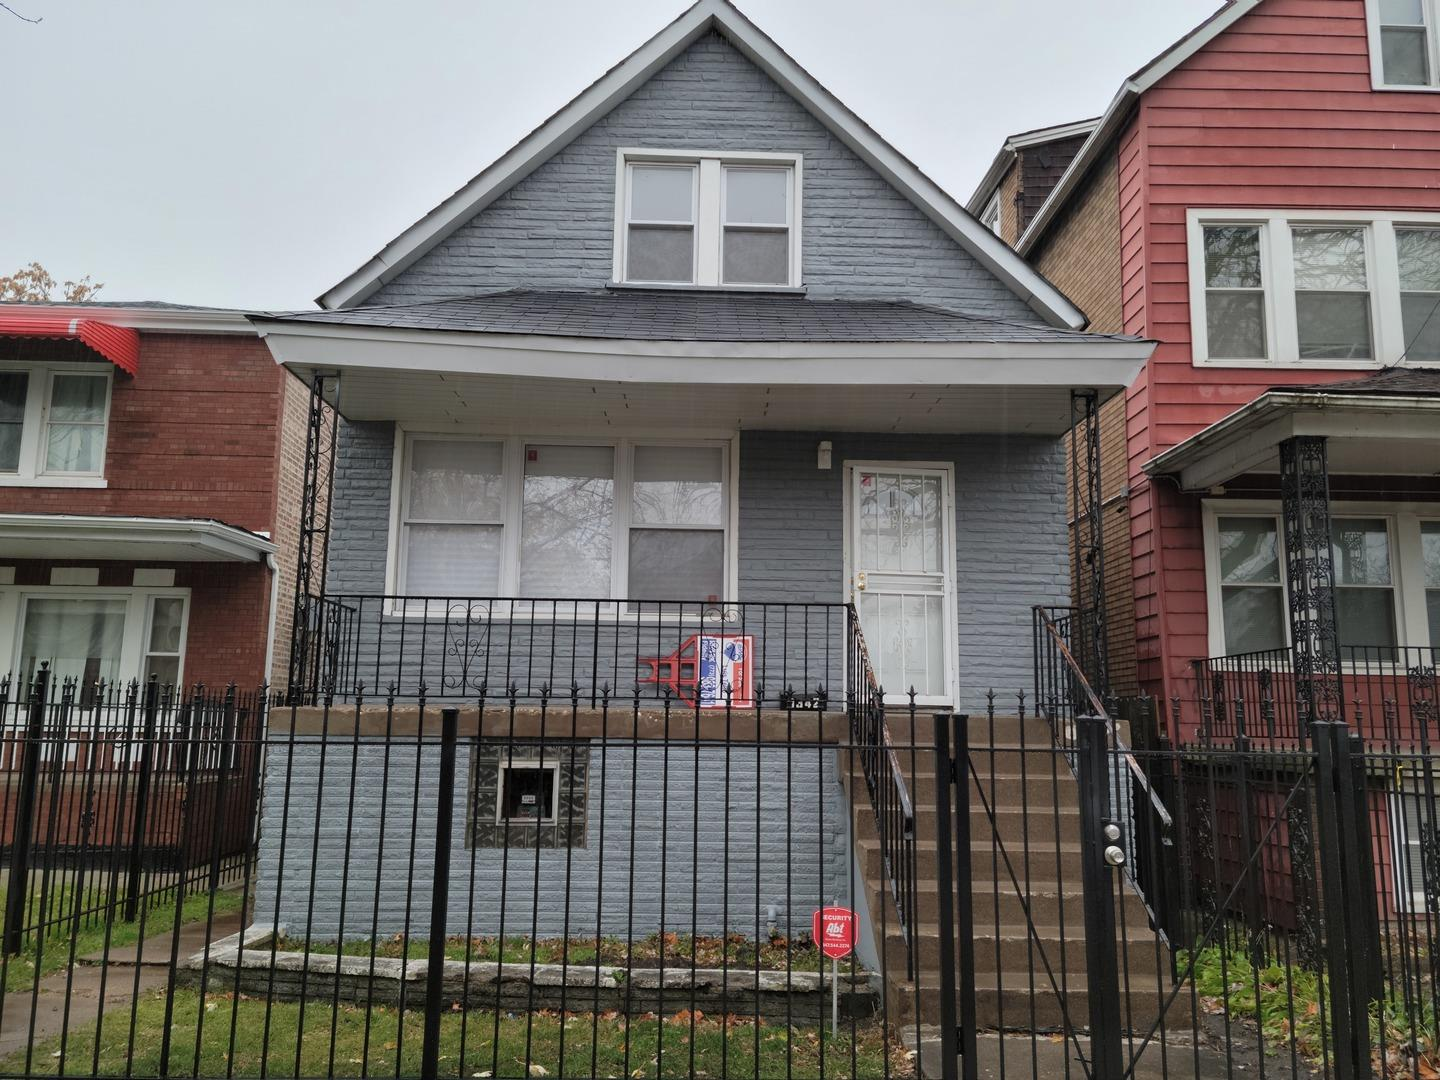 8342 S KINGSTON Avenue, Chicago, IL 60617 - #: 10949382